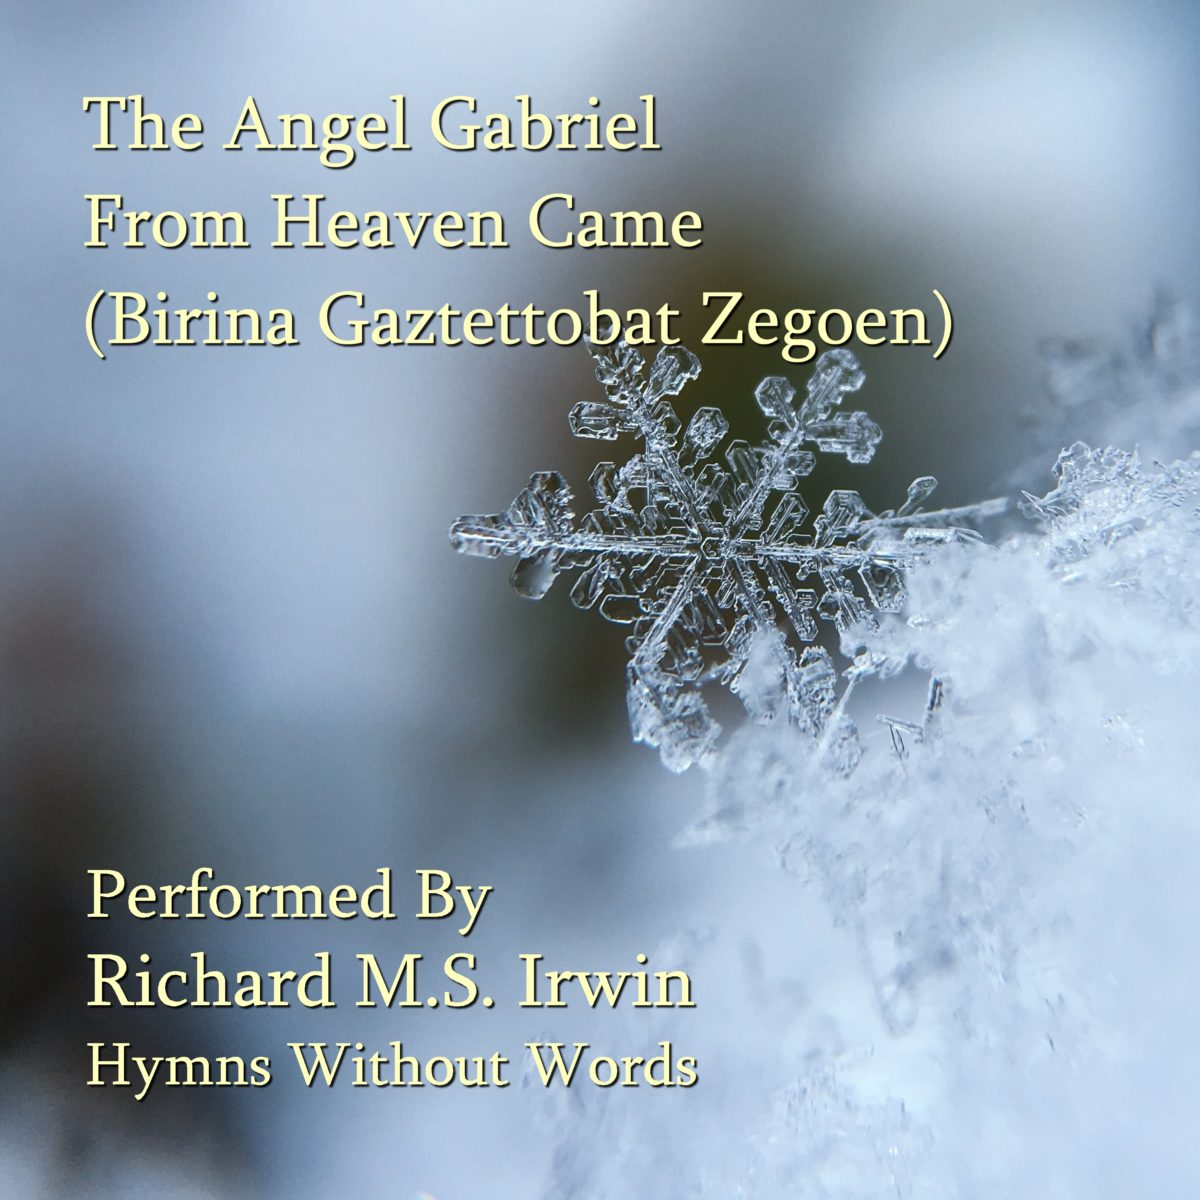 The Angel Gabriel From Heaven Came (Birina Gaztettobat Zegoen – 4 Verses) – Small Ensemble